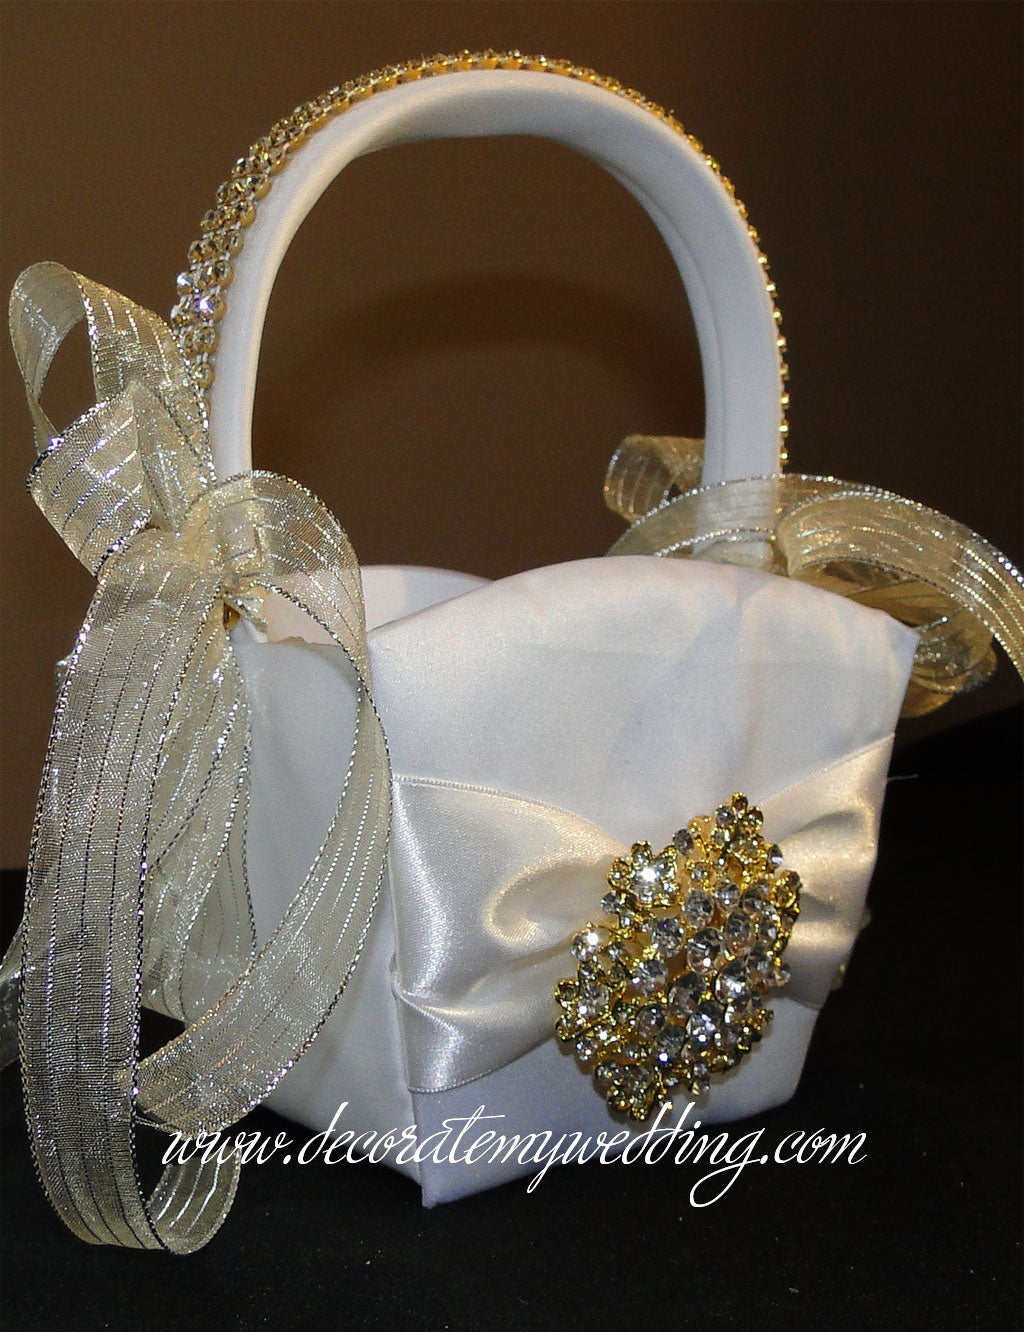 Gold flower girl basket trimmed with gold rhinestone banding, ribbons, and brooch.